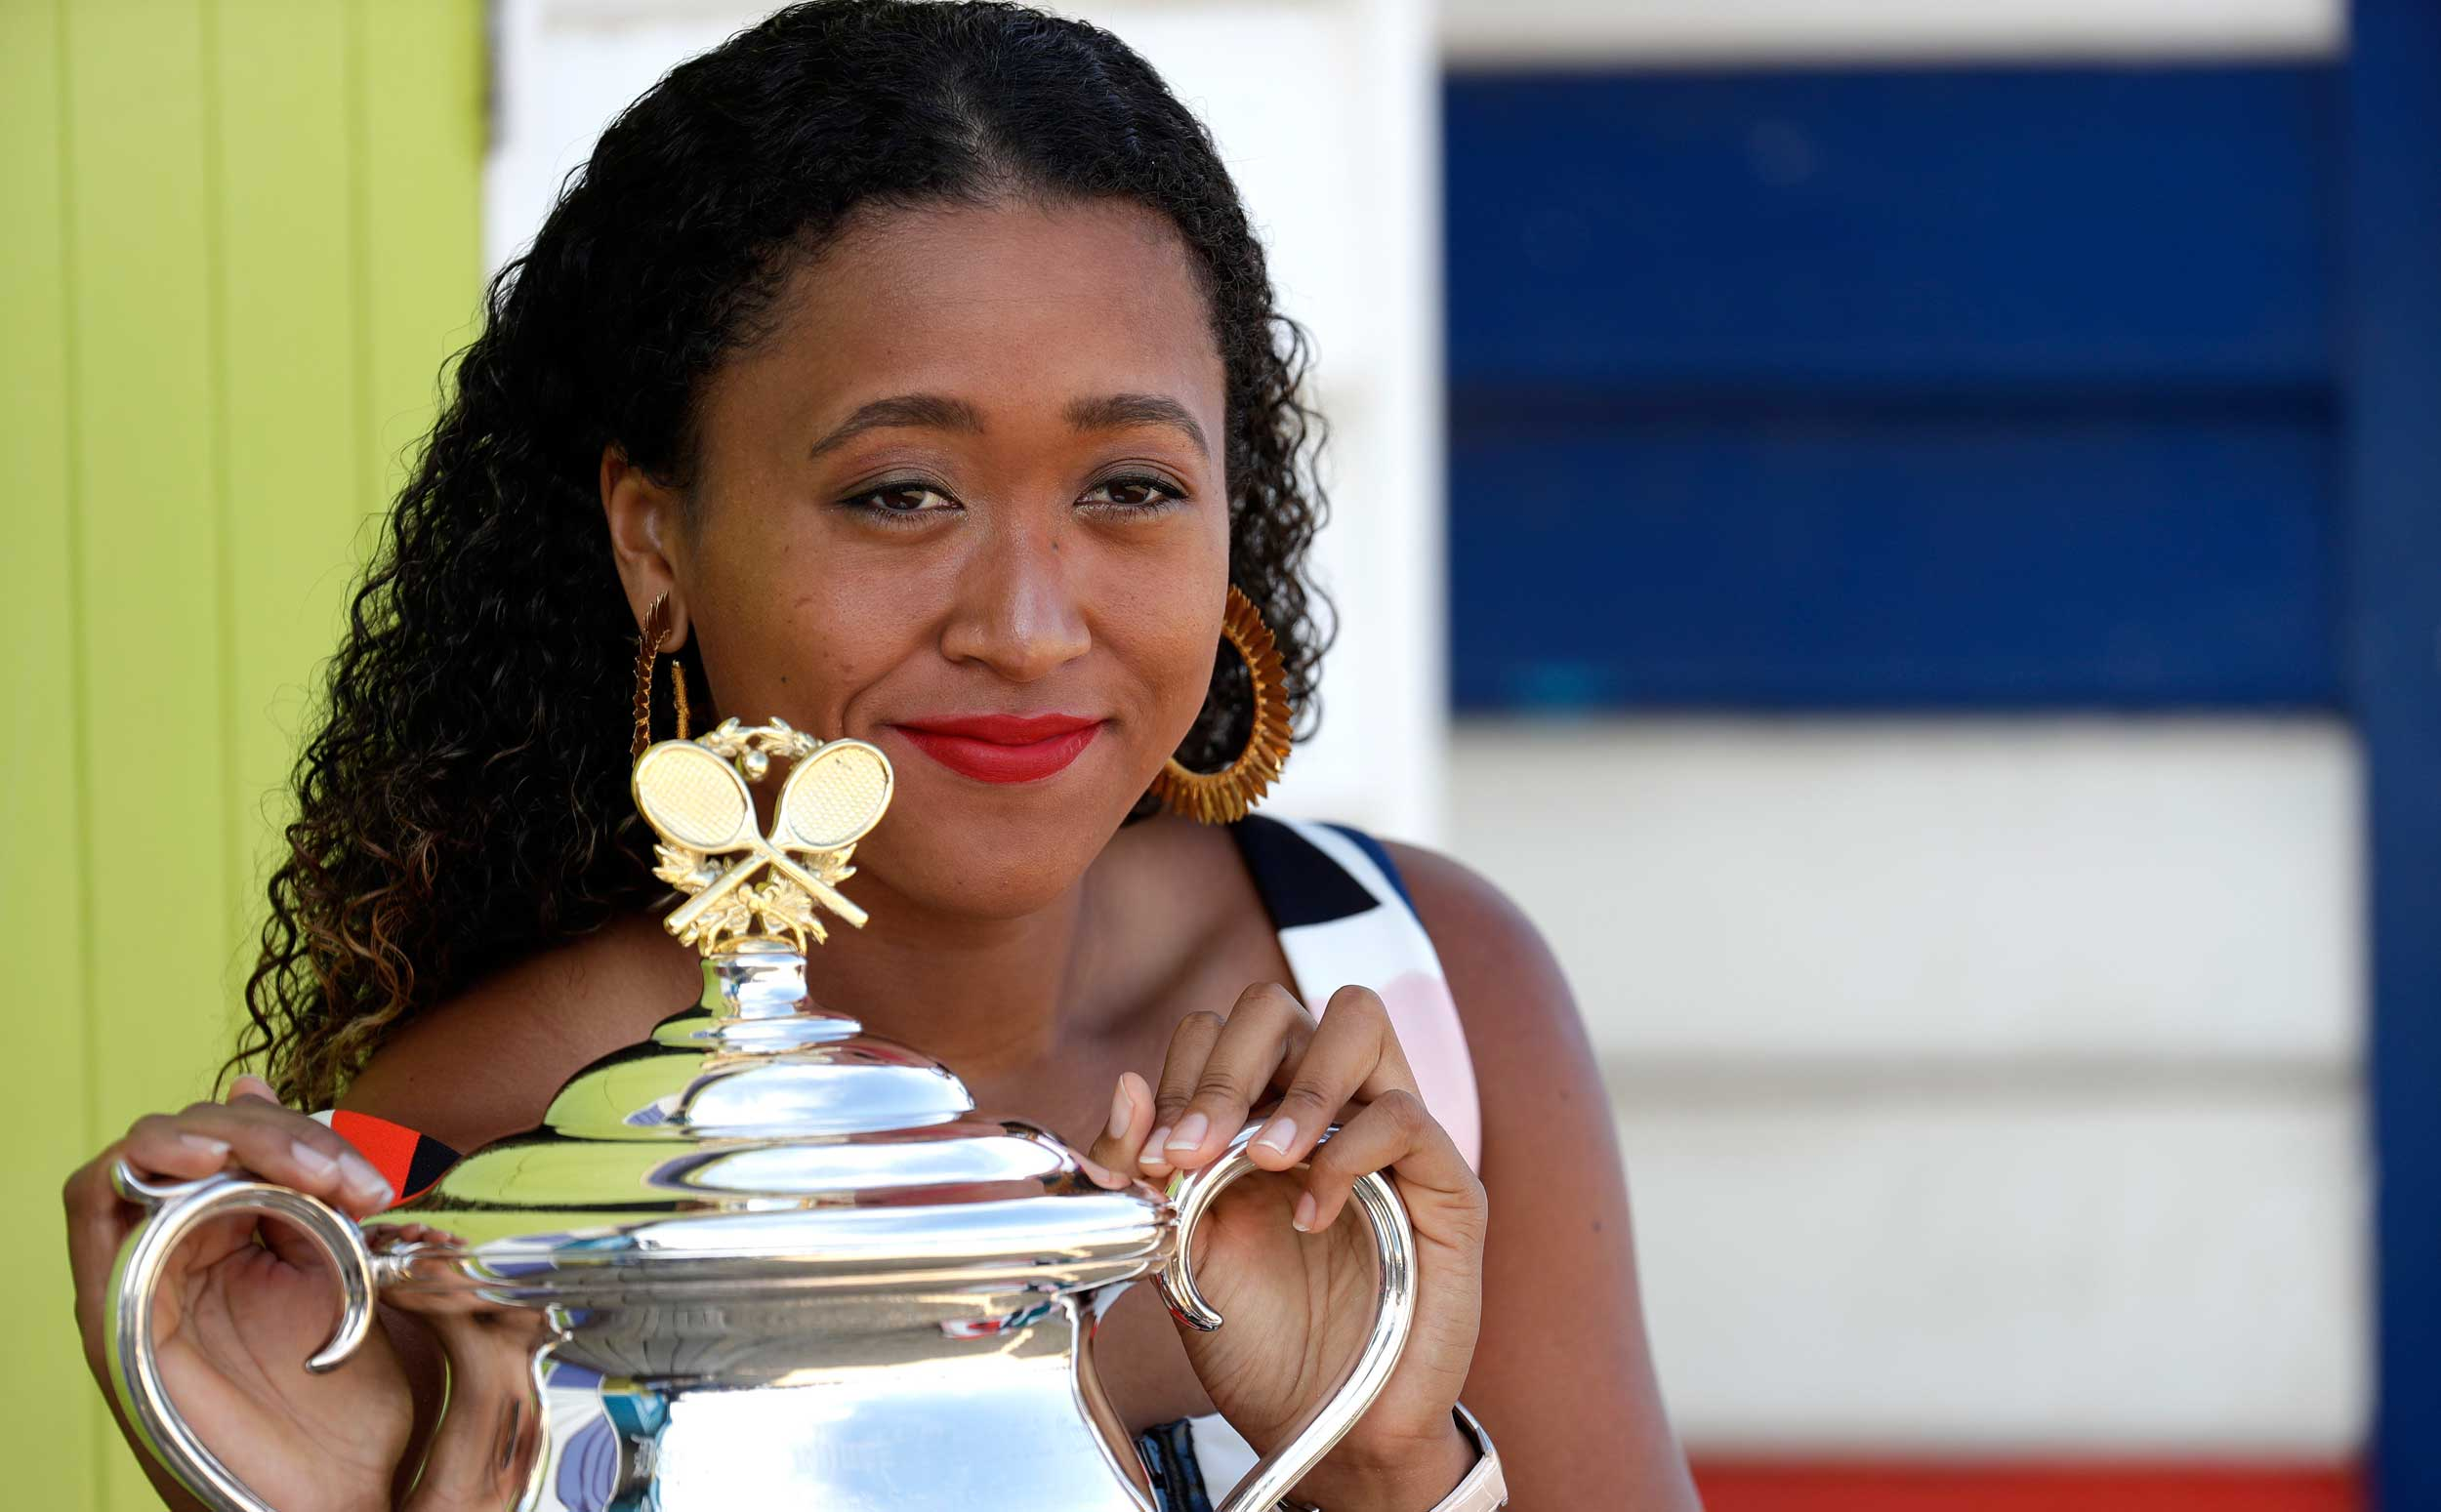 Naomi Osaka poses with her trophy the Daphne Akhurst Memorial Cup at Melbourne's Brighton Beach after her win over Petra Kvitova in the women's singles final at the Australian Open tennis championships in Melbourne, Australia, on January 27.